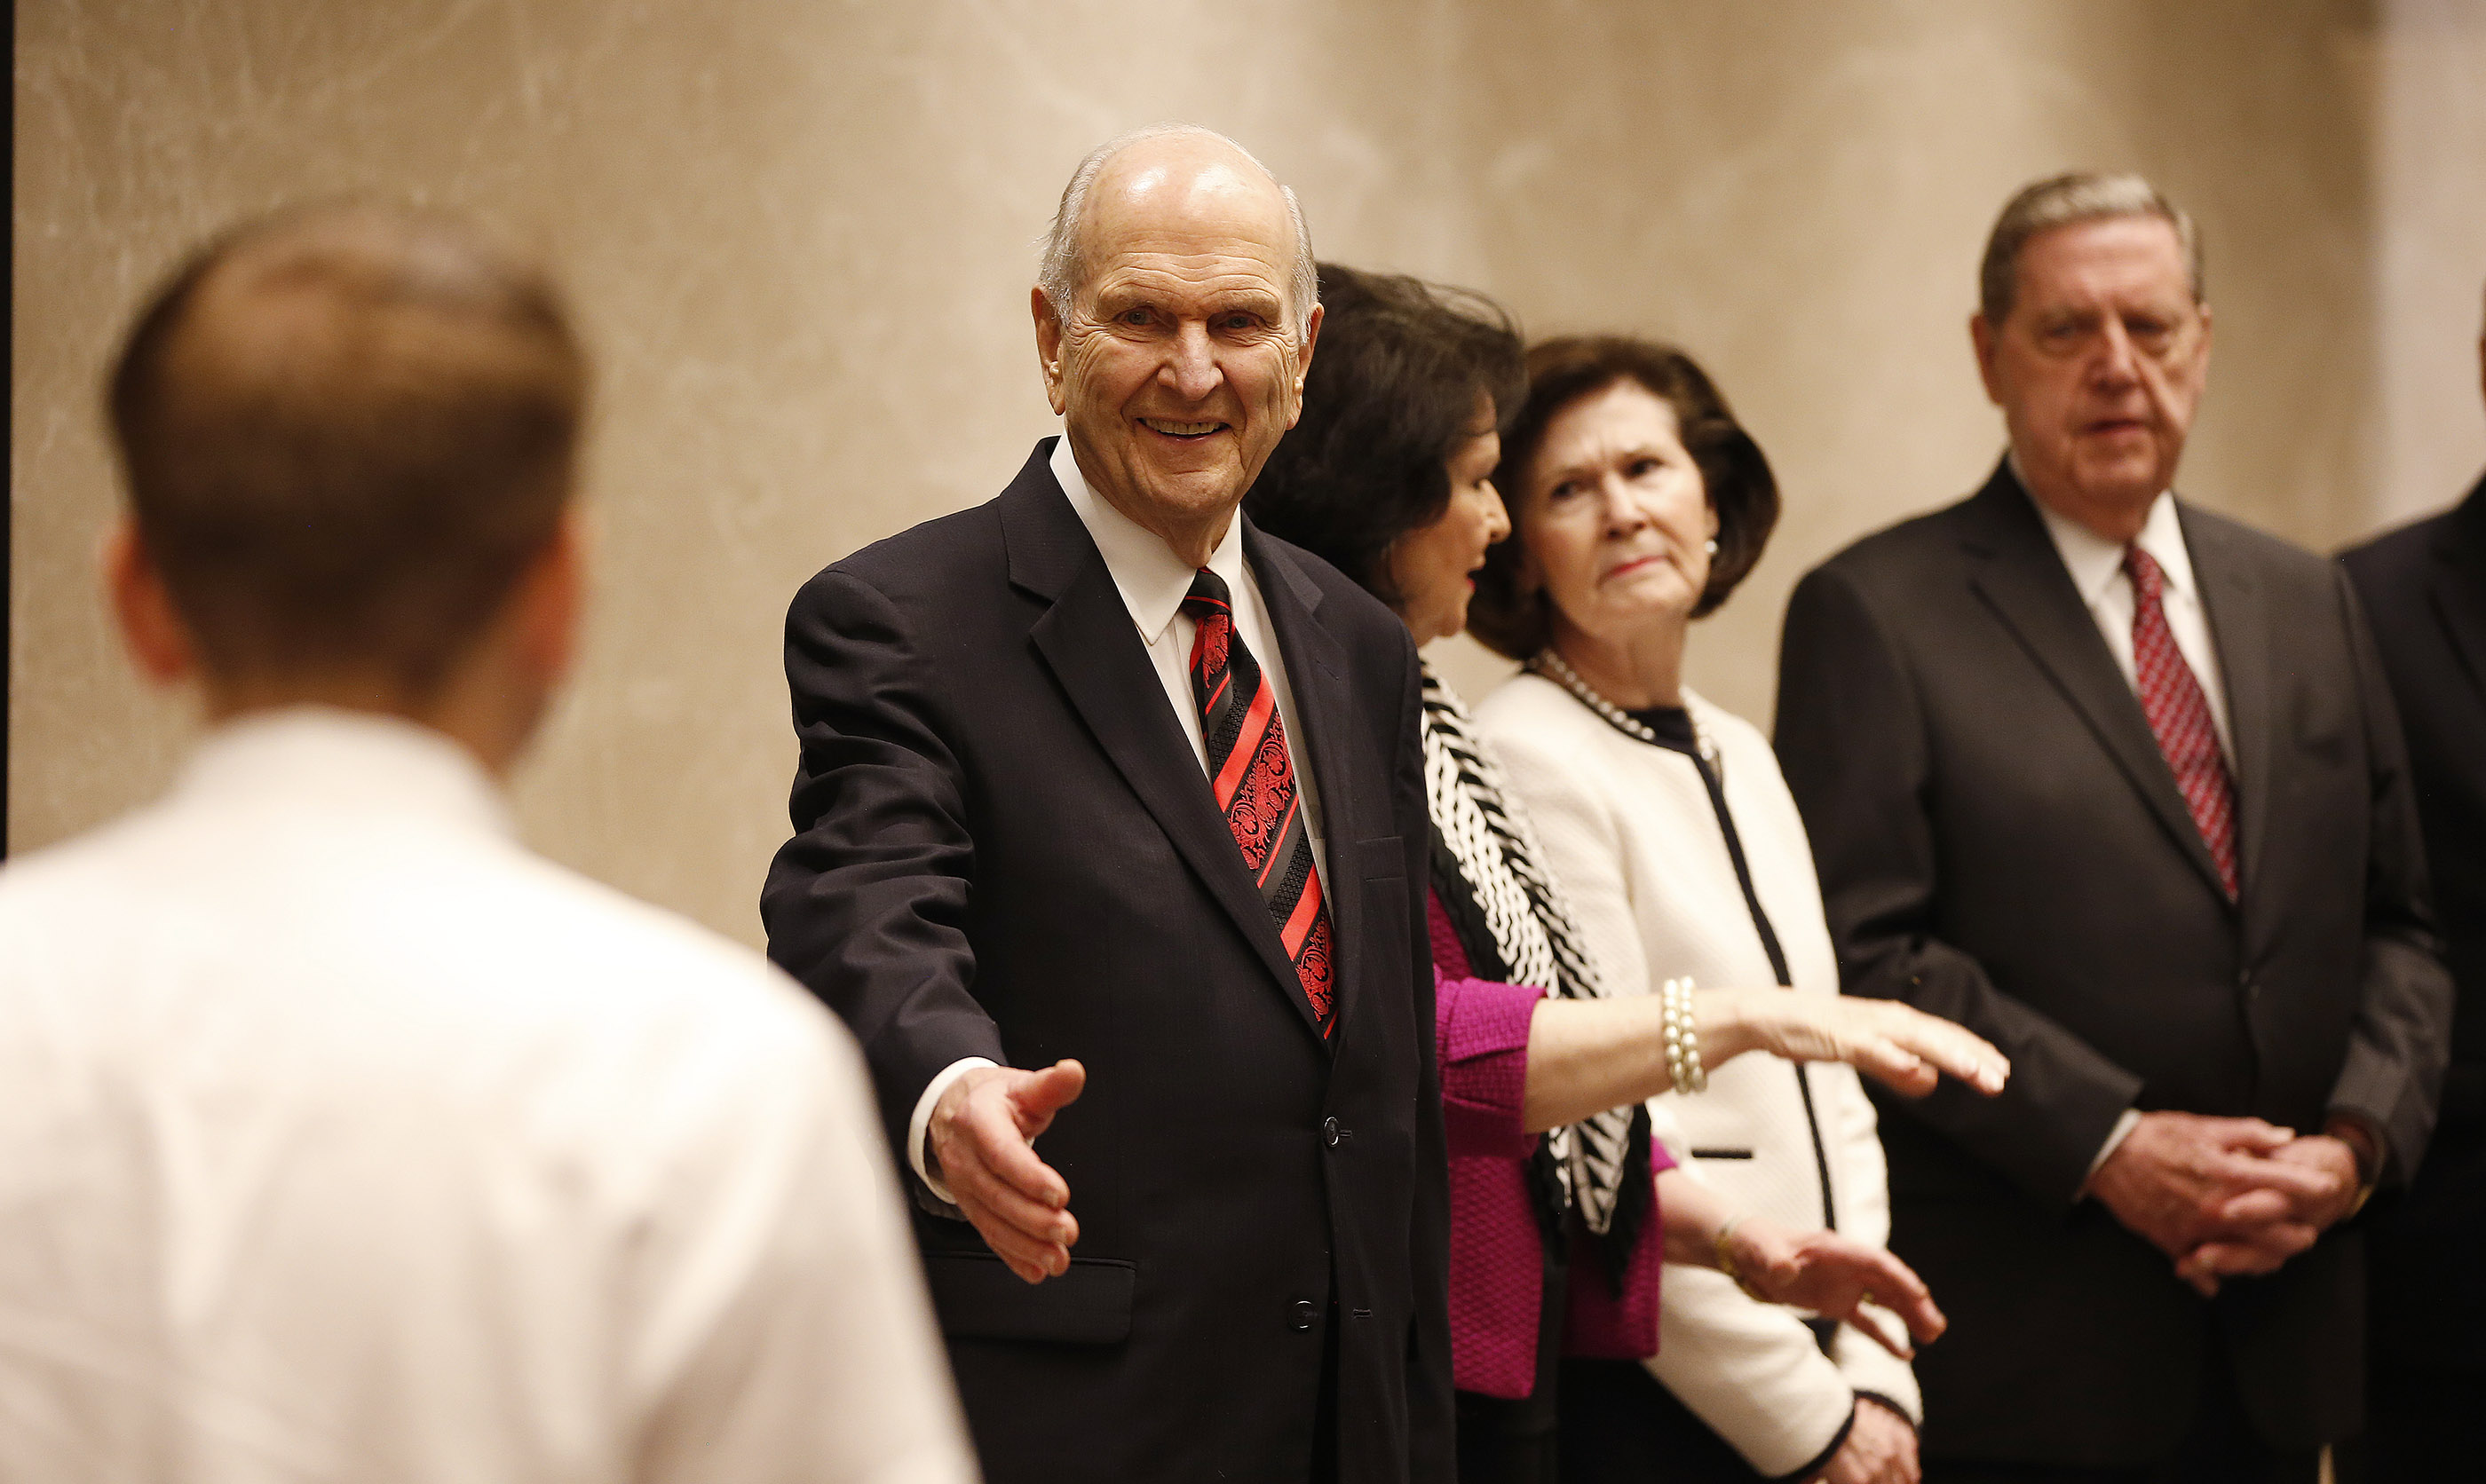 President Russell M. Nelson, his wife, Sister Wendy Nelson, Sister Patricia Holland and her husband, Elder Jeffrey R. Holland of the Quorum of the Twelve Apostles, greet missionaries prior to a conference in Bengaluru, India, on Thursday, April 19, 2018.